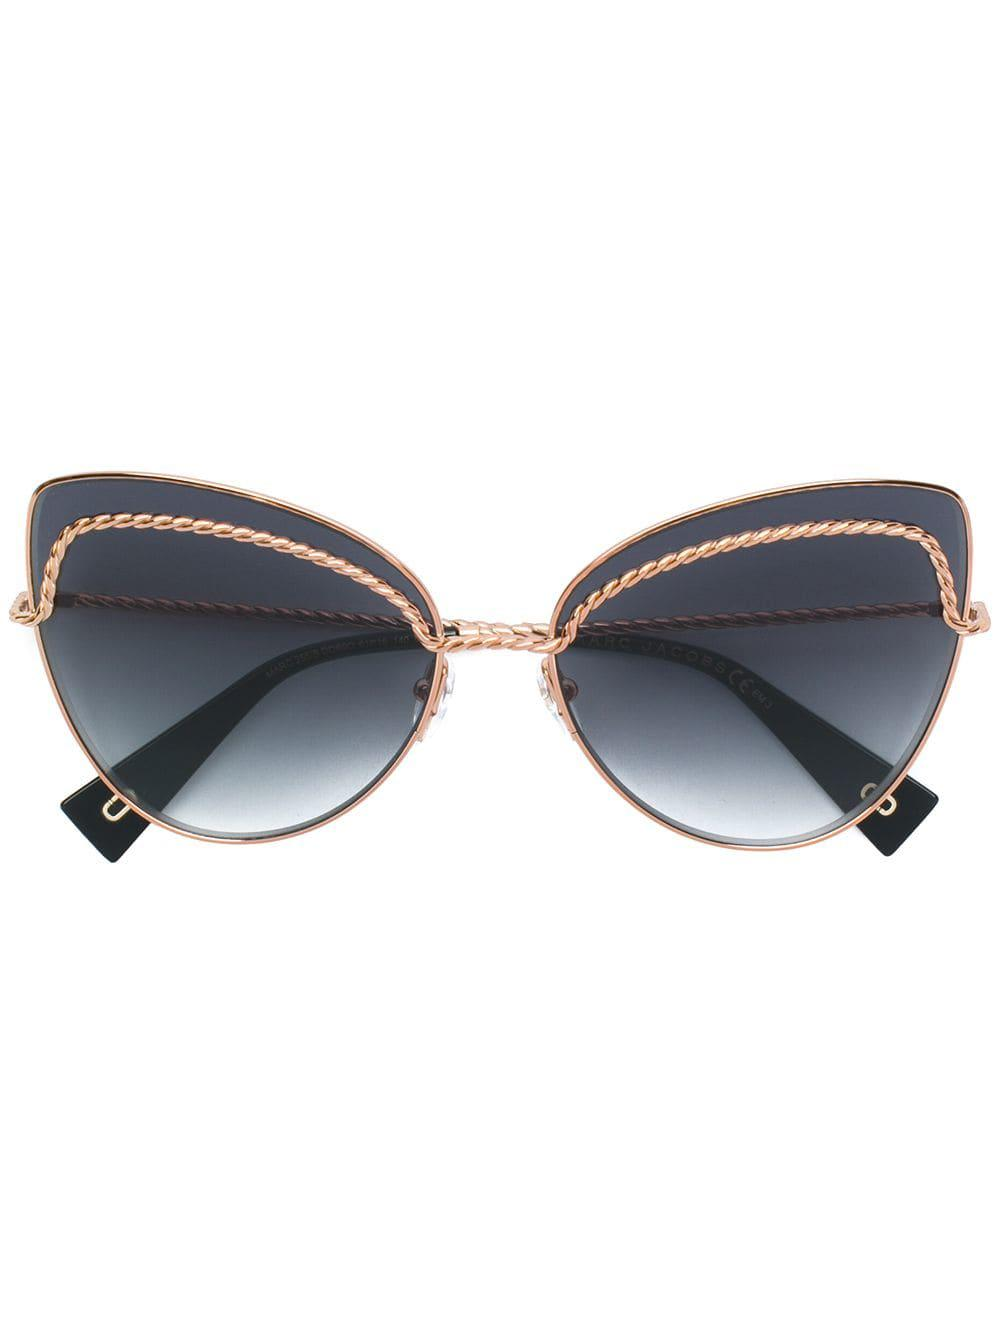 aad2ce938489 Gallery. Previously sold at: Farfetch · Women's Cat Eye Sunglasses ...